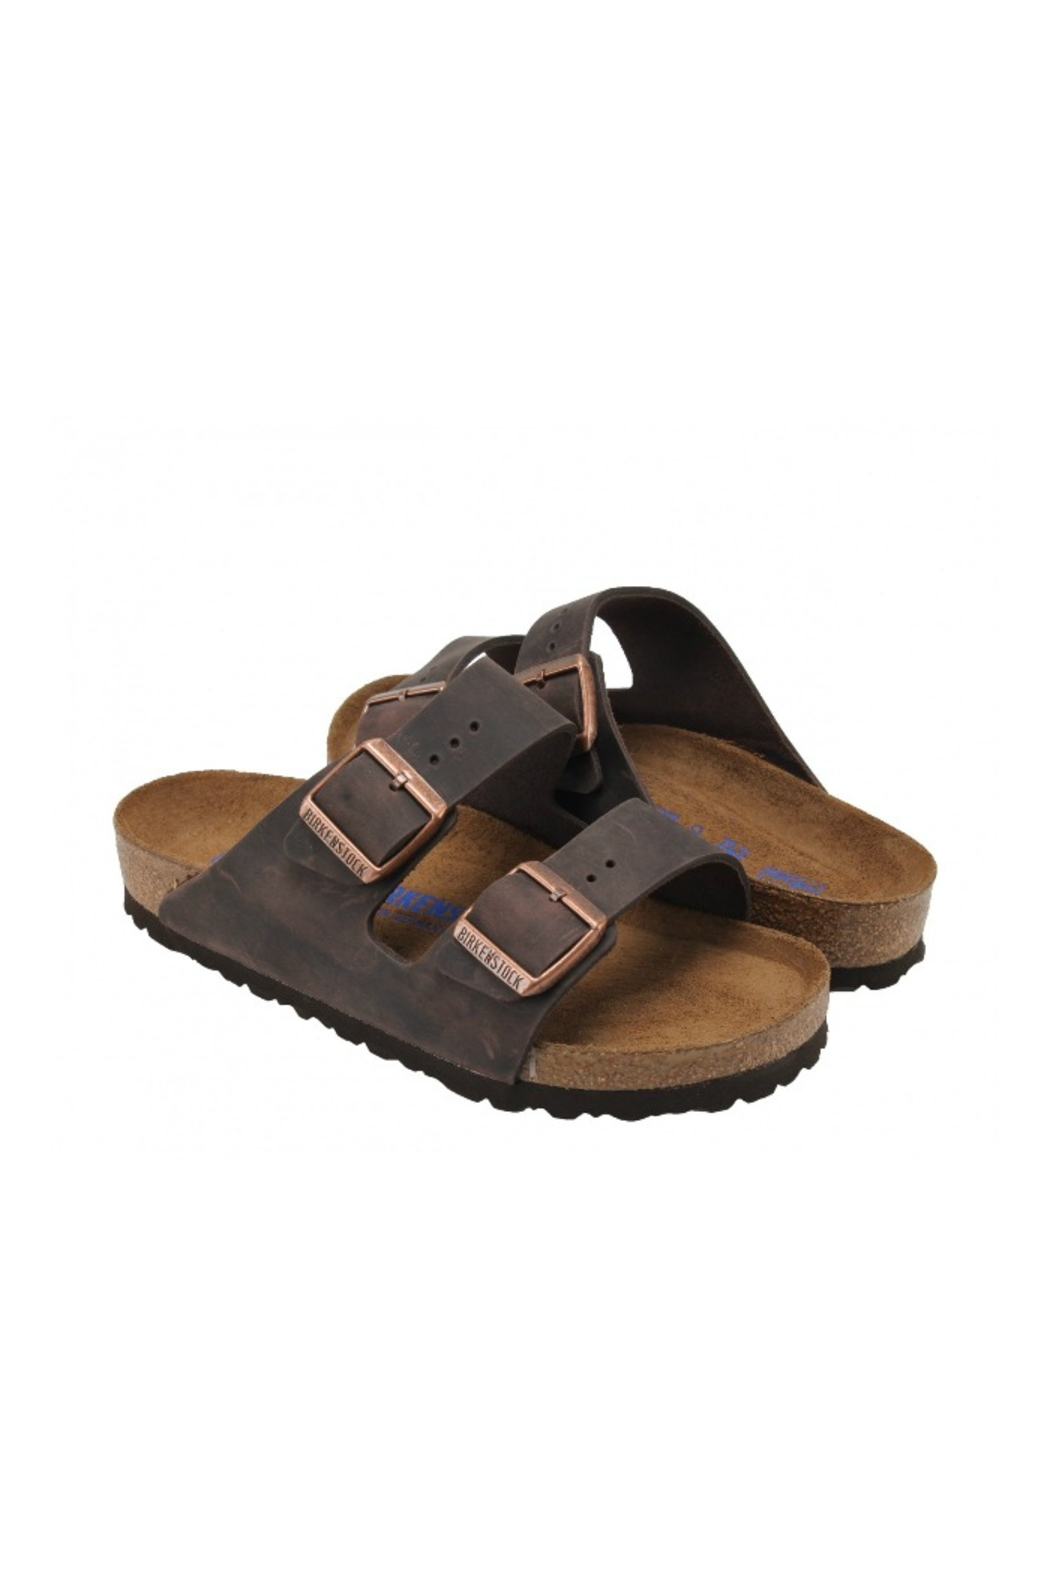 Birkenstock BIRKENSTOCK Arizona Regular Width in Habana - Side Cropped Image